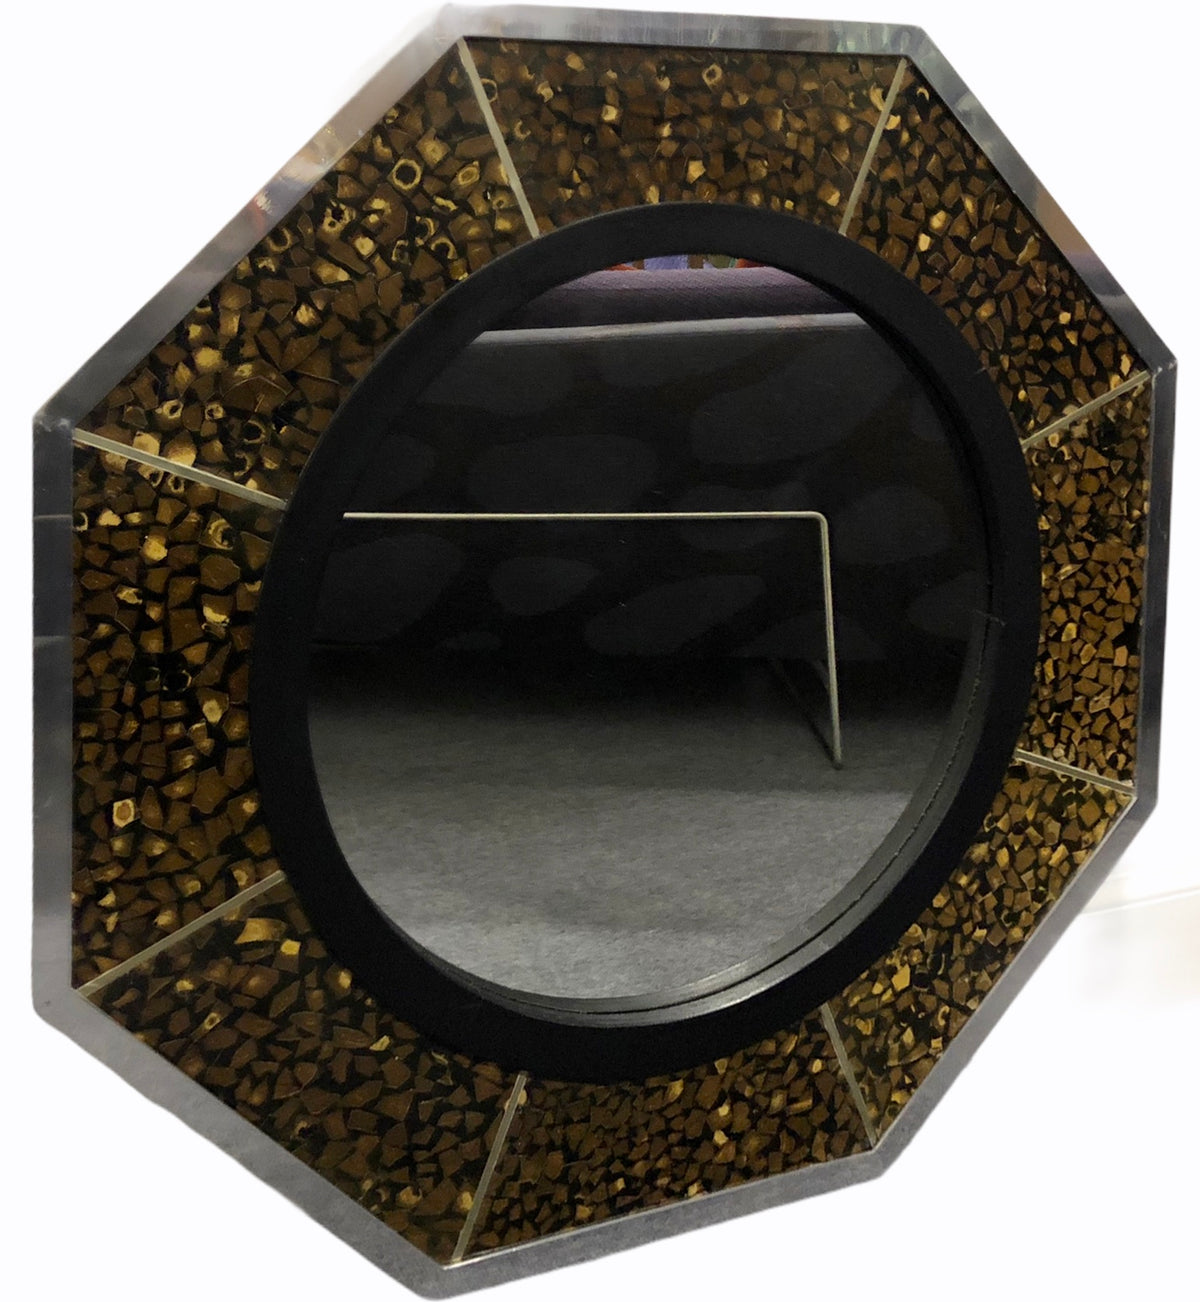 Anthony Redmile Coconut Octagonal Mirror